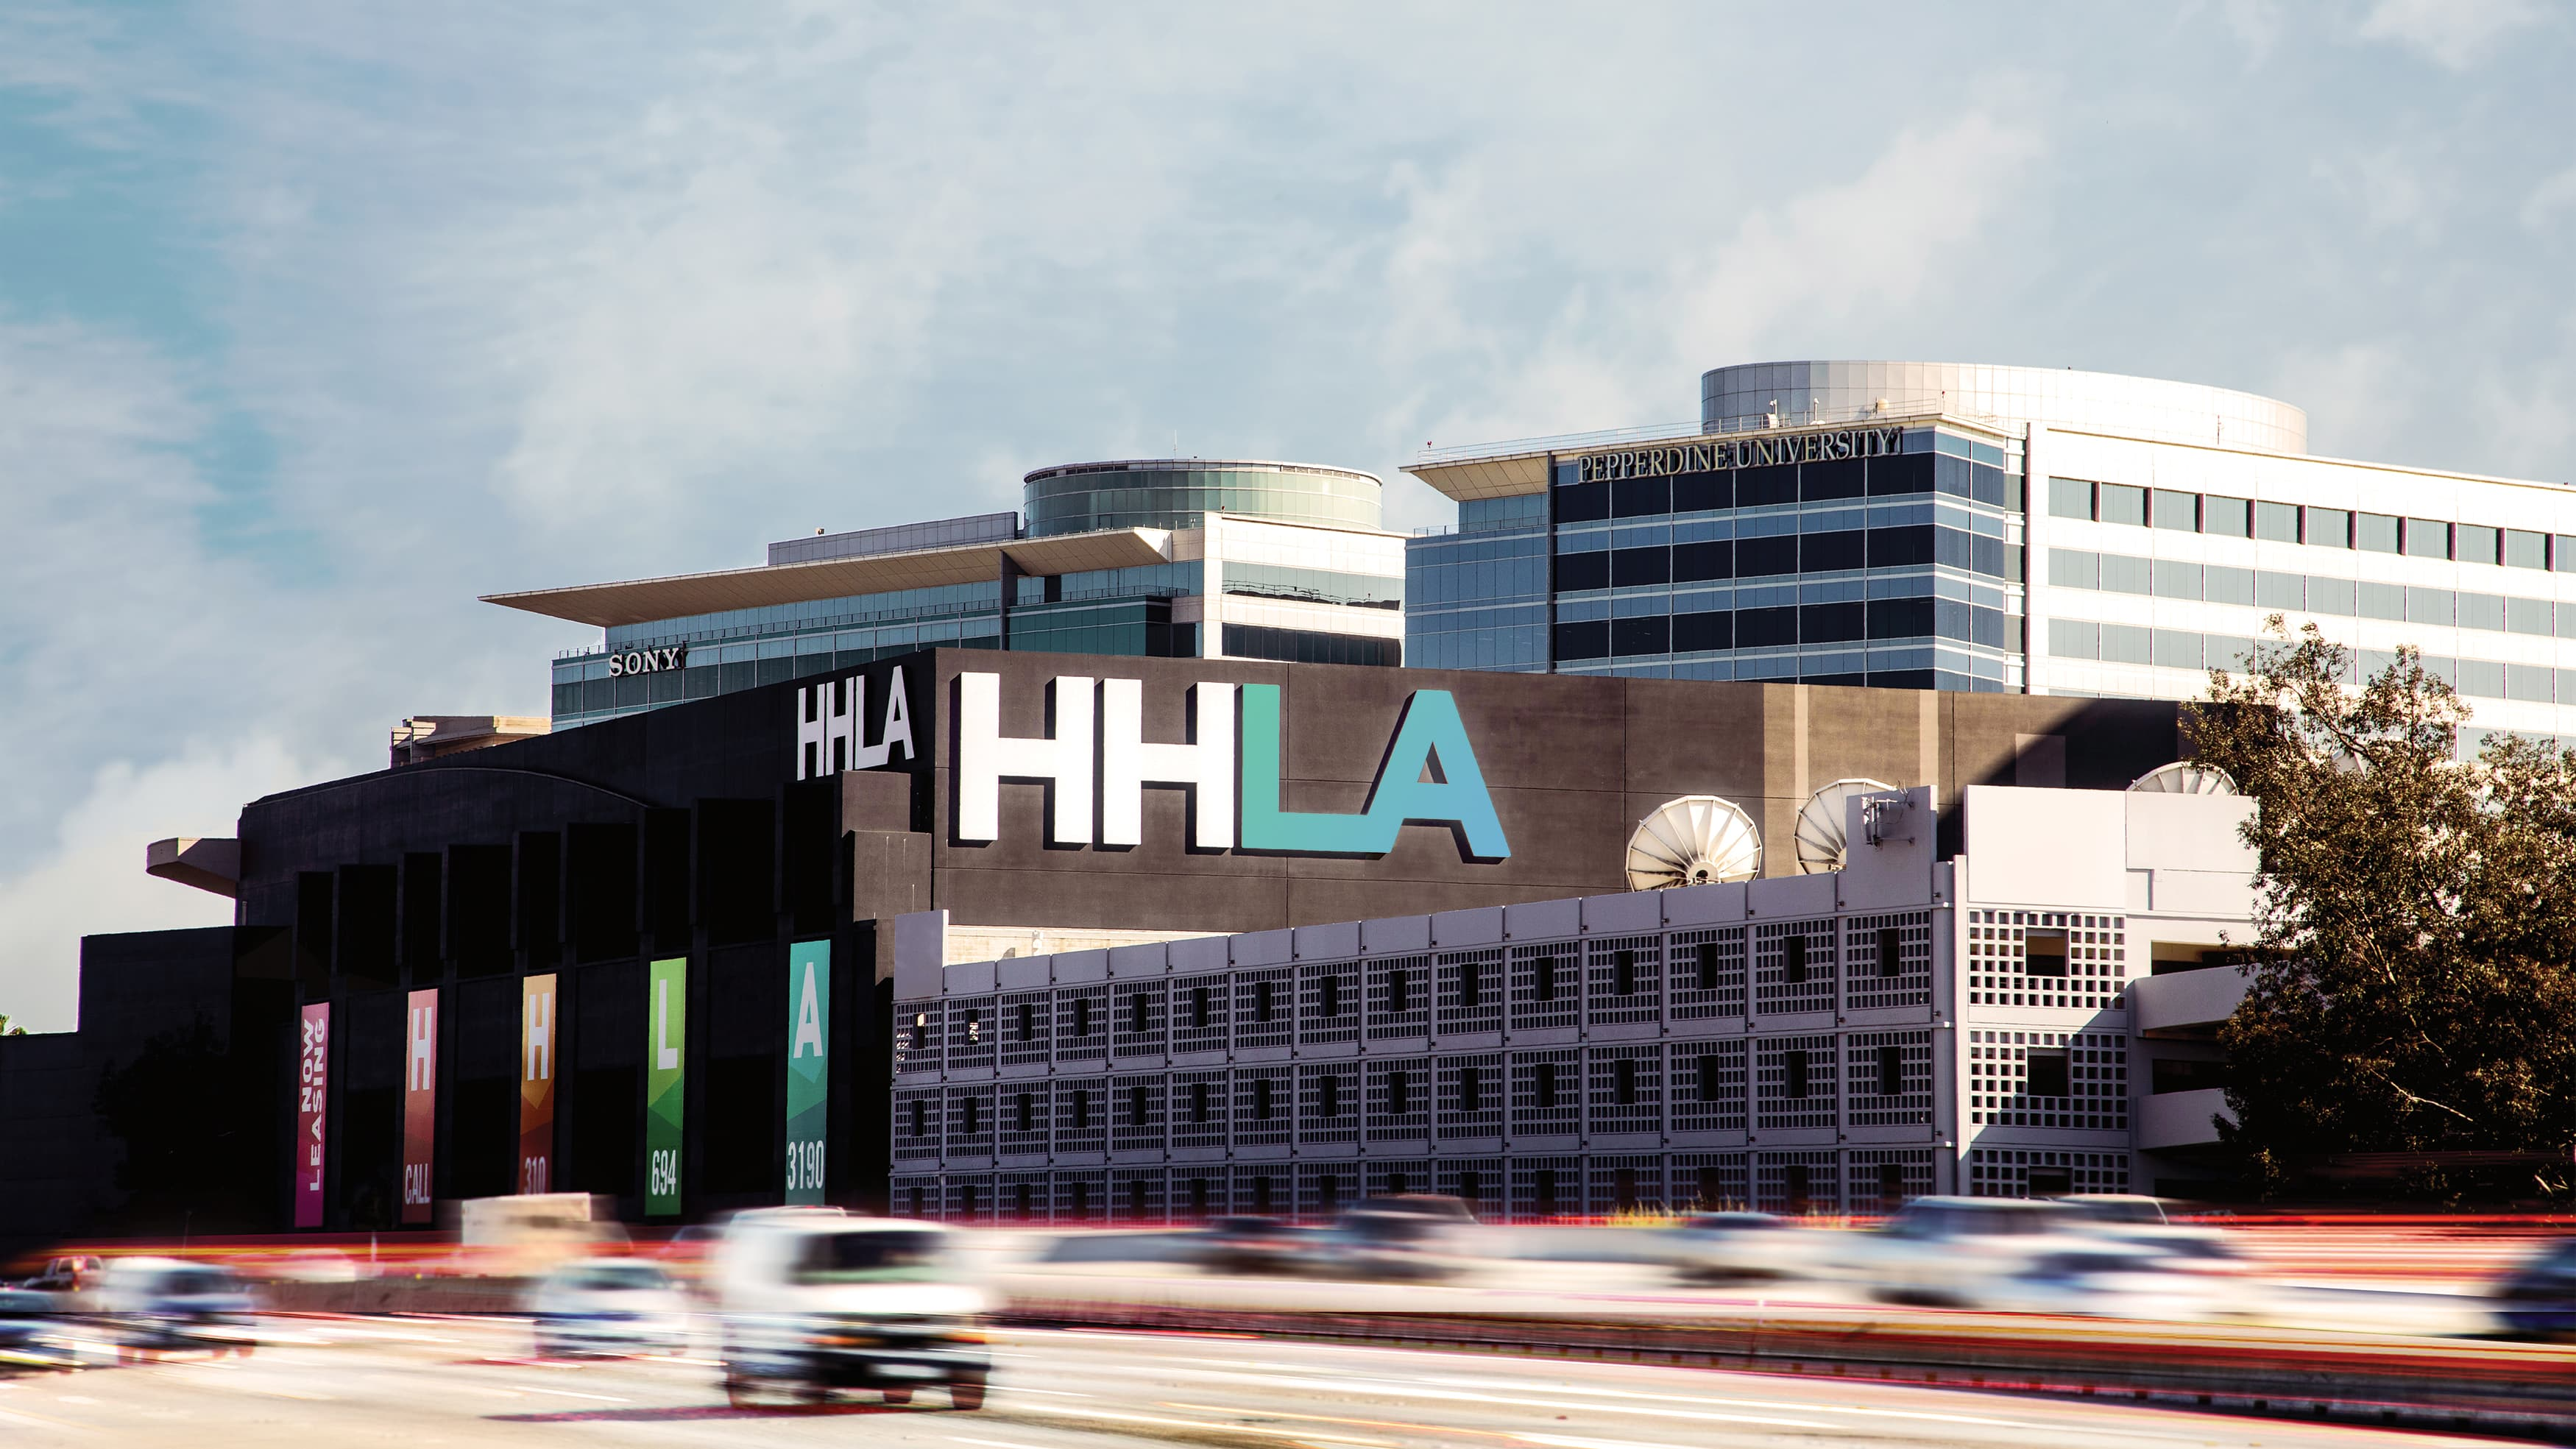 HHLA project from across the 5 freeway, with giant identity facing outward.